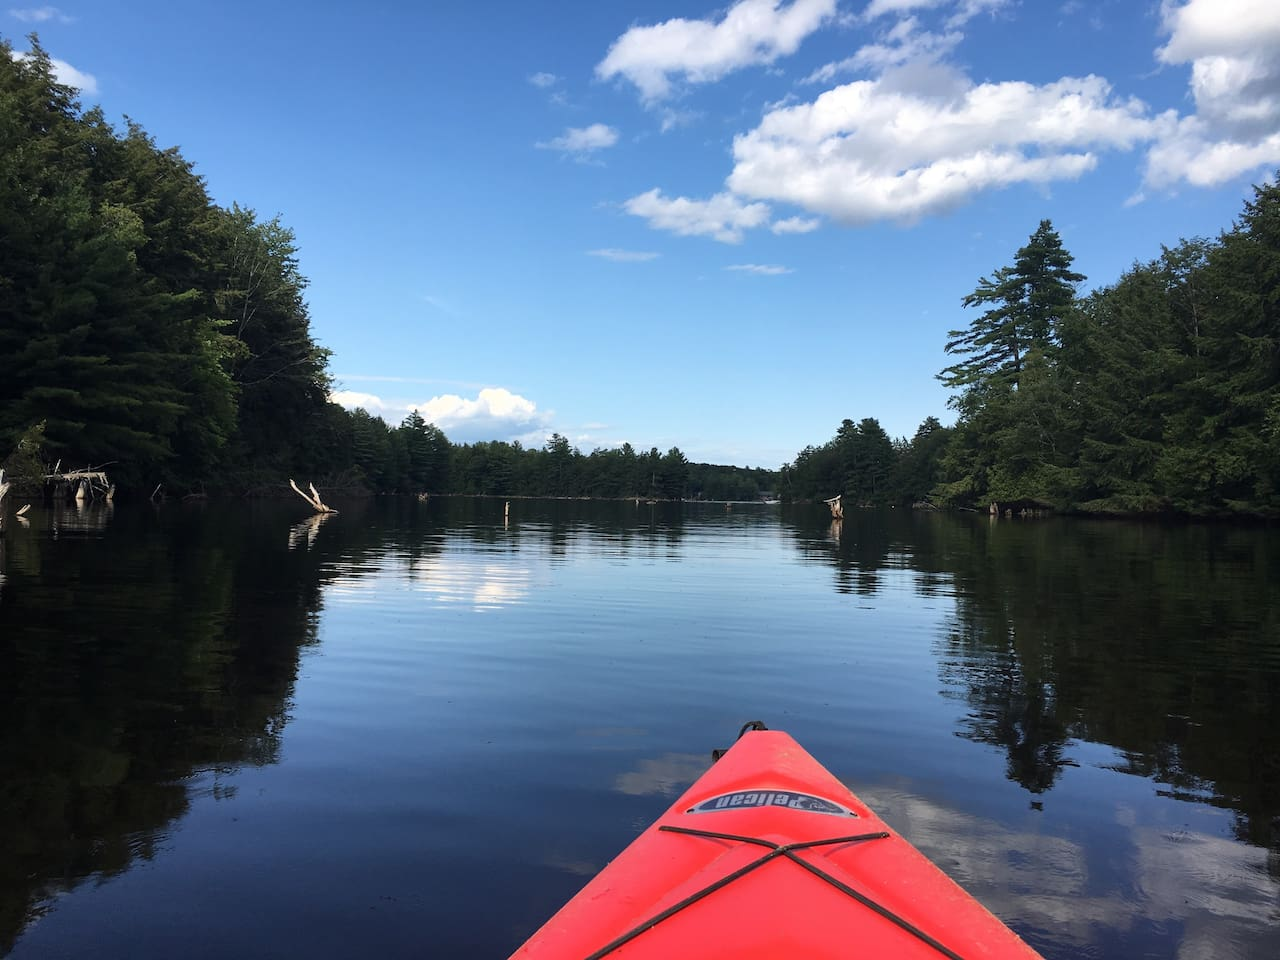 Kayak into the bay to enjoy the tranquility of nature